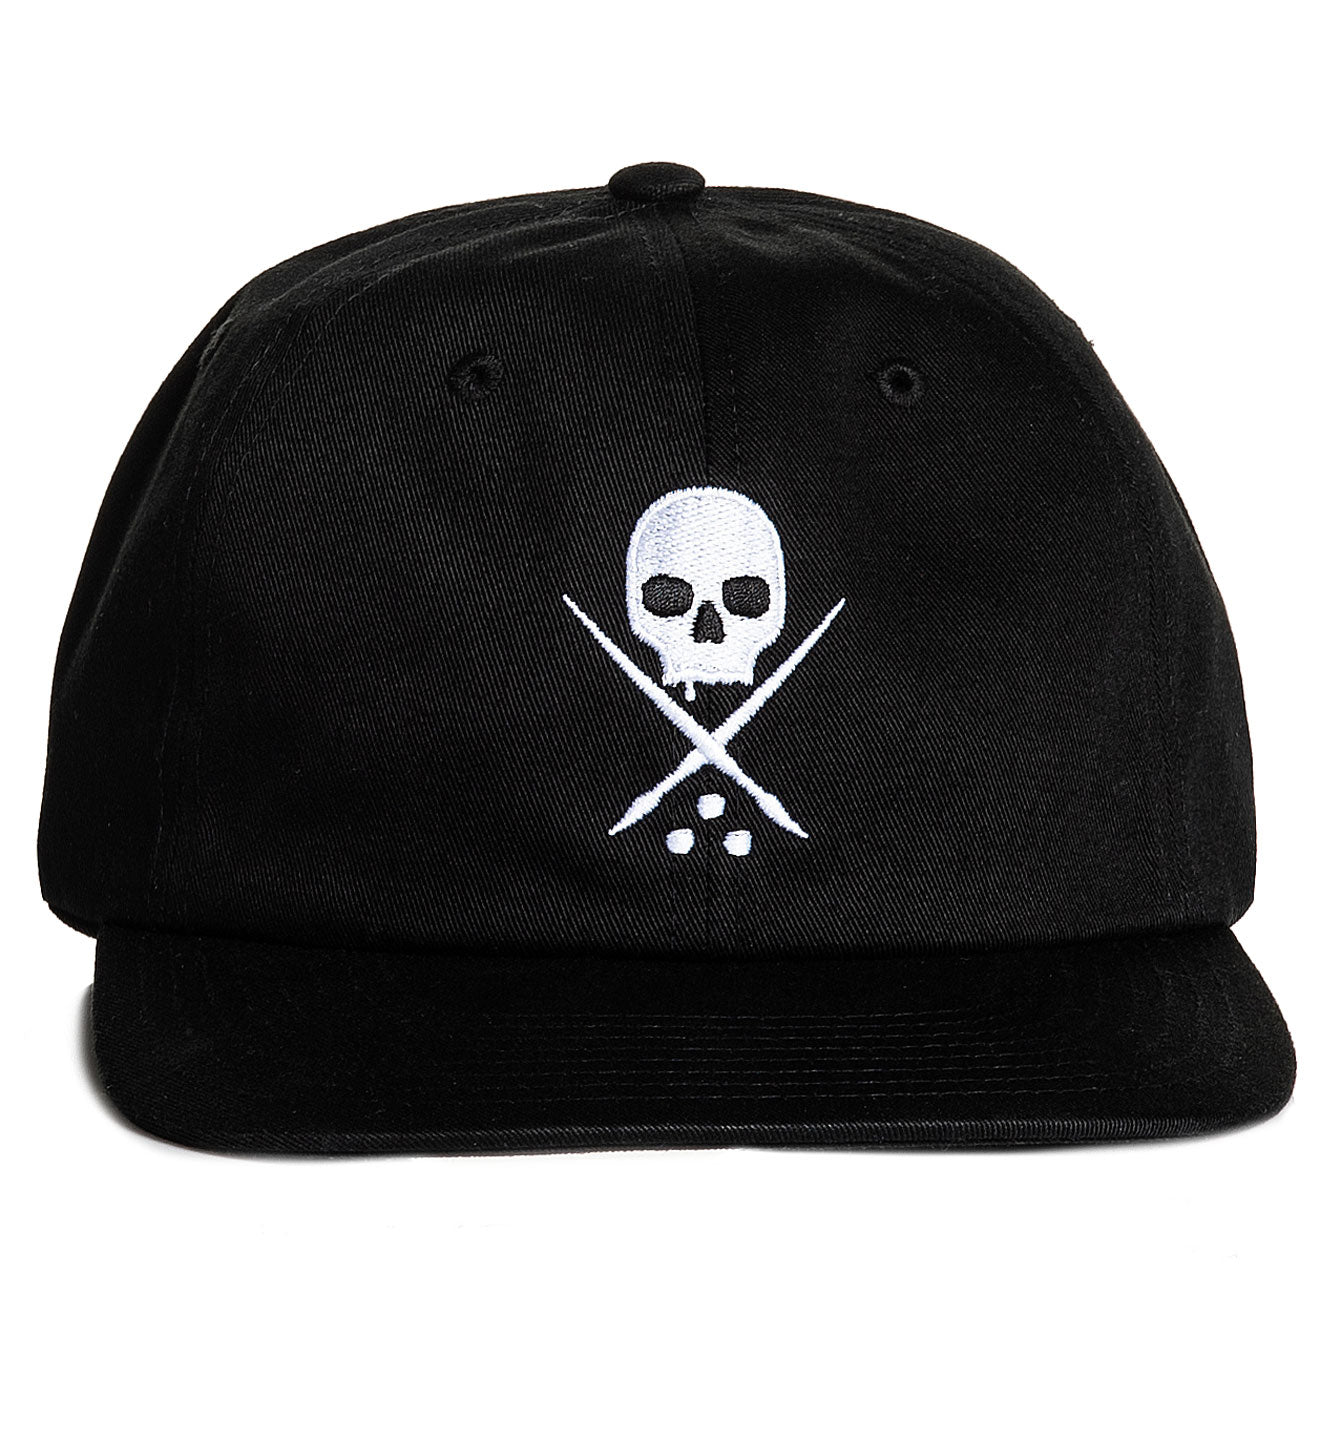 Boh Dad Hat Black